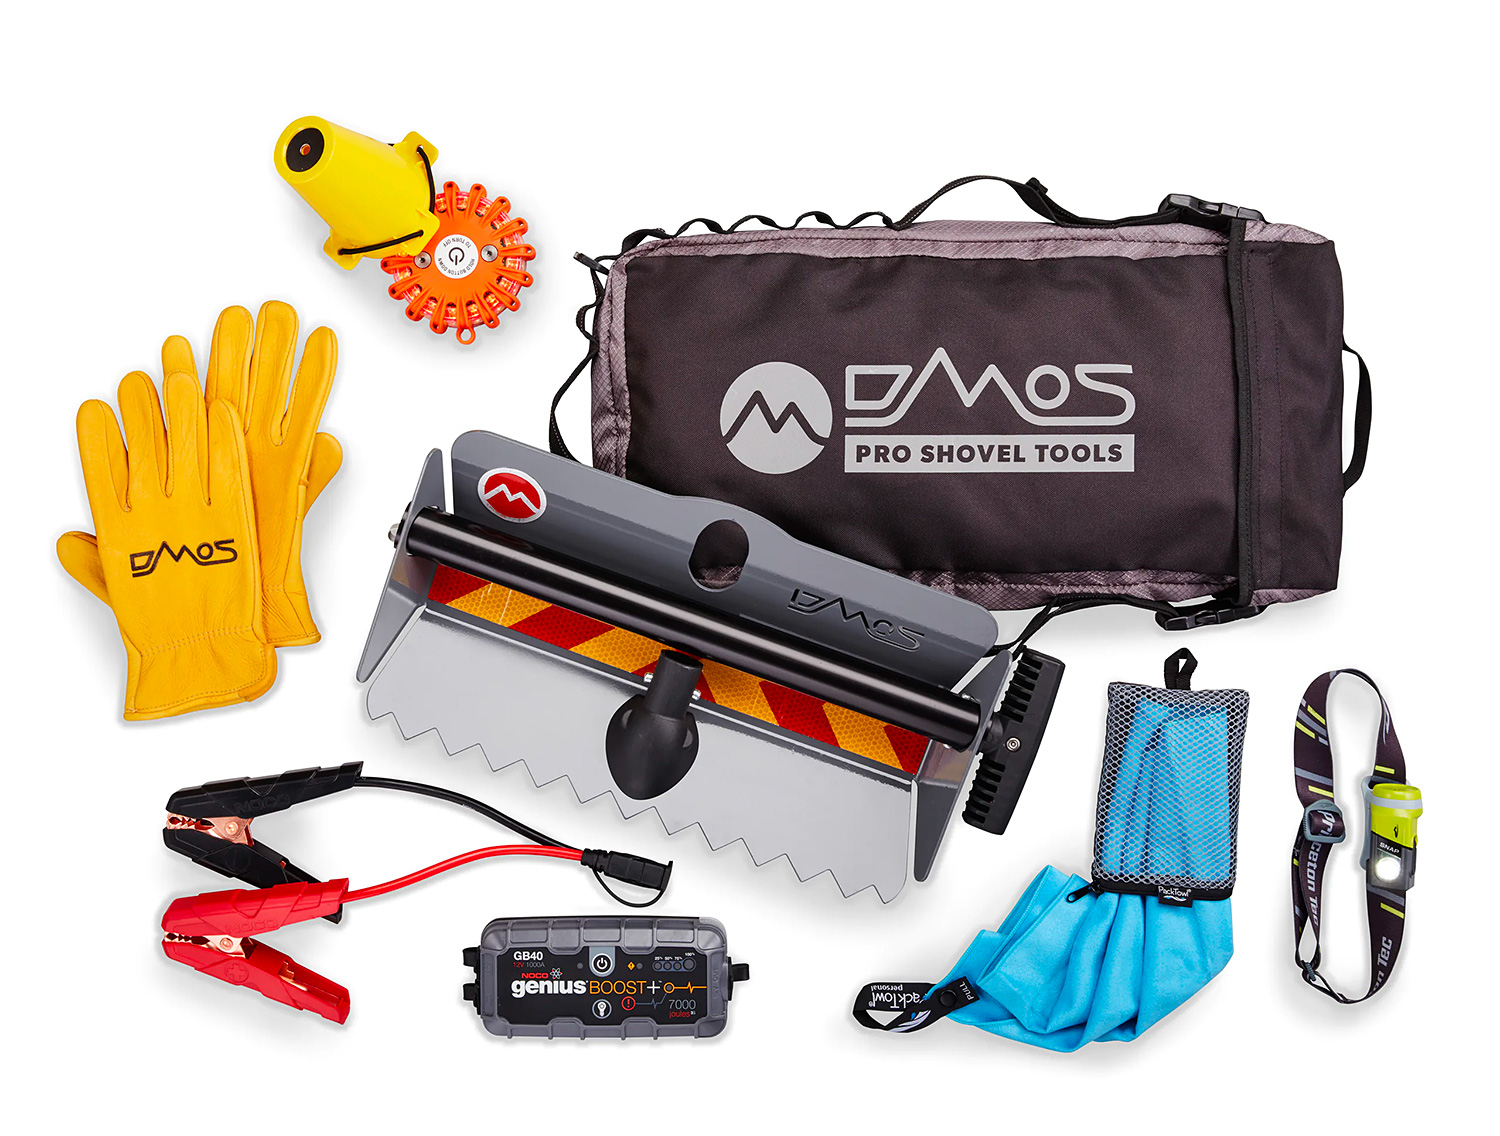 This Roadside Emergency Kit from DMOS Gets You Back On Track at werd.com